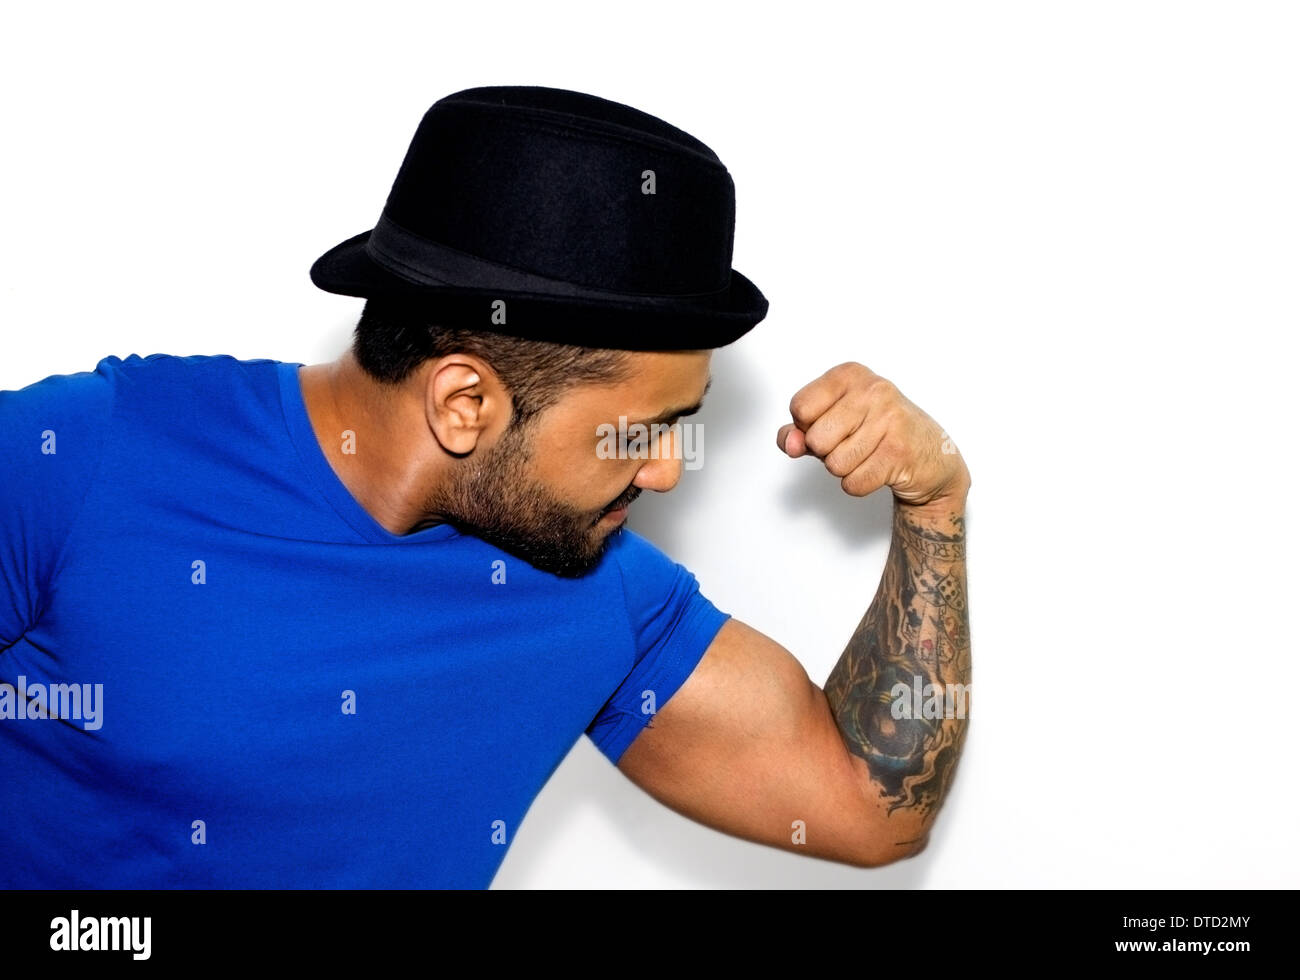 Ethnic Indian male with hat and tattoos 53c186312